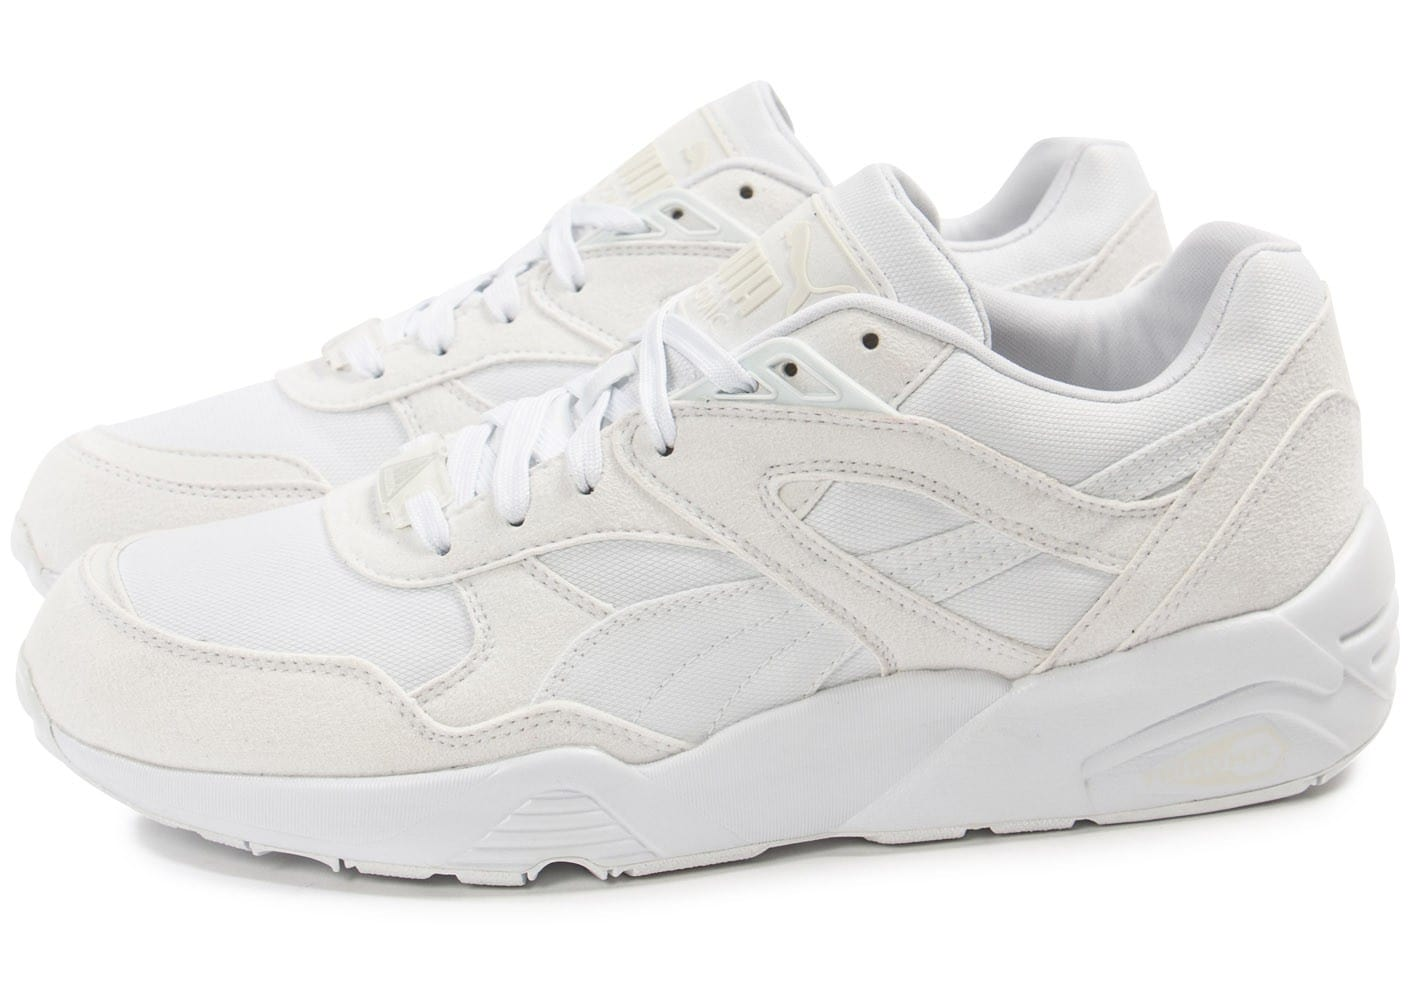 plus de photos 0d51b 506e0 Puma R698 Trinomic blanche - Chaussures Baskets homme ...